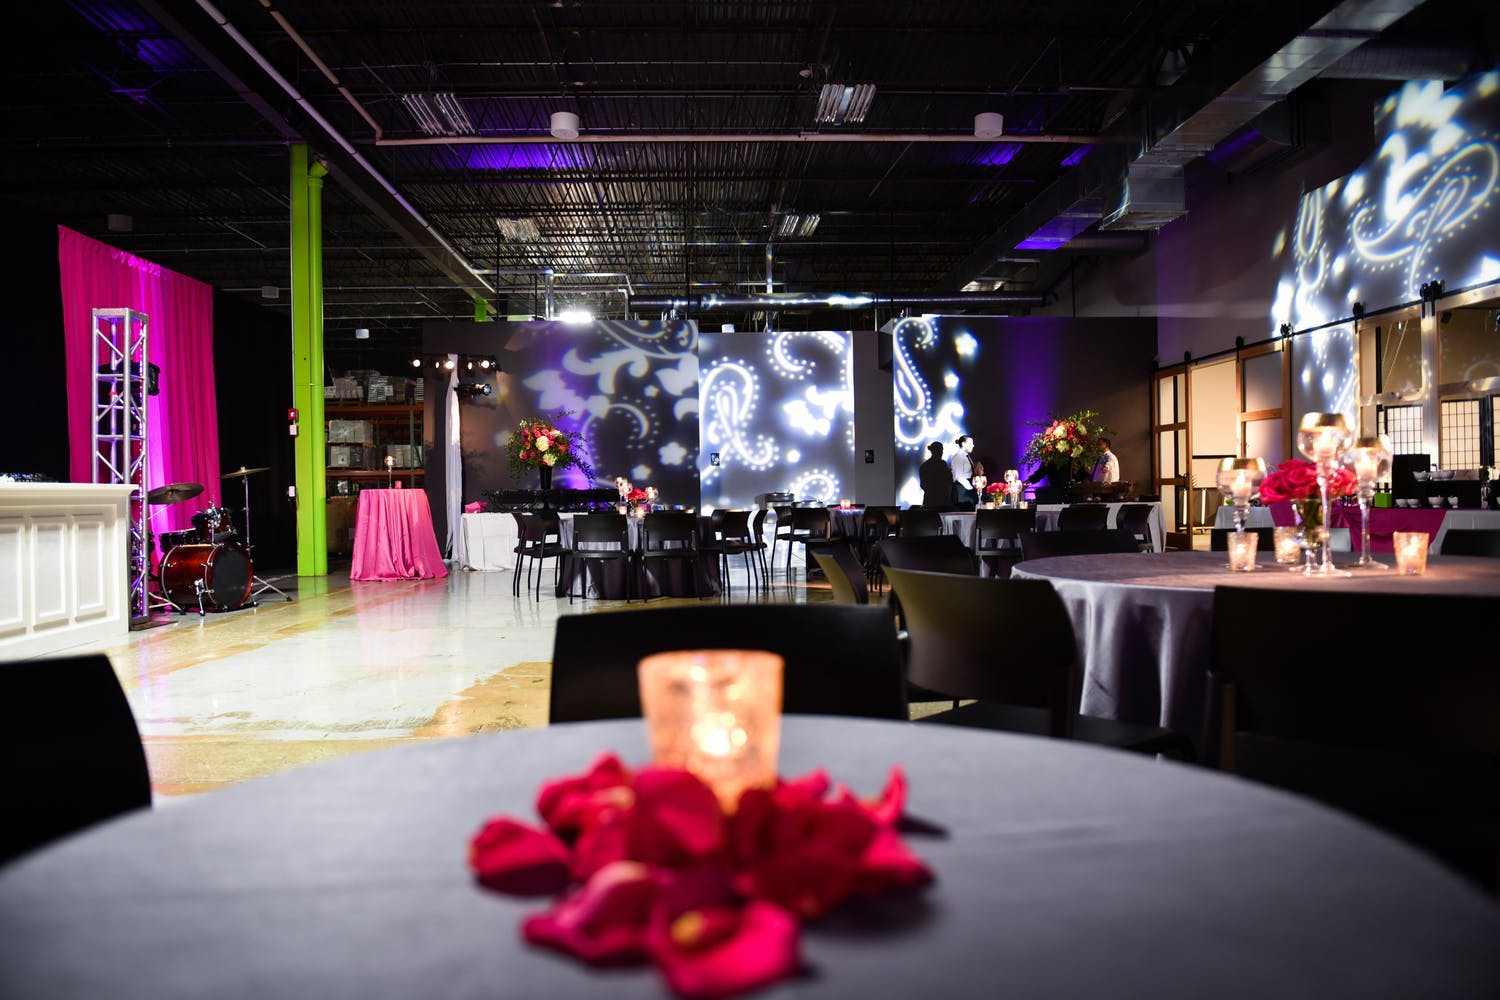 40th Birthday at industrial Venue With Paisley Wall Lighting | PartySlate